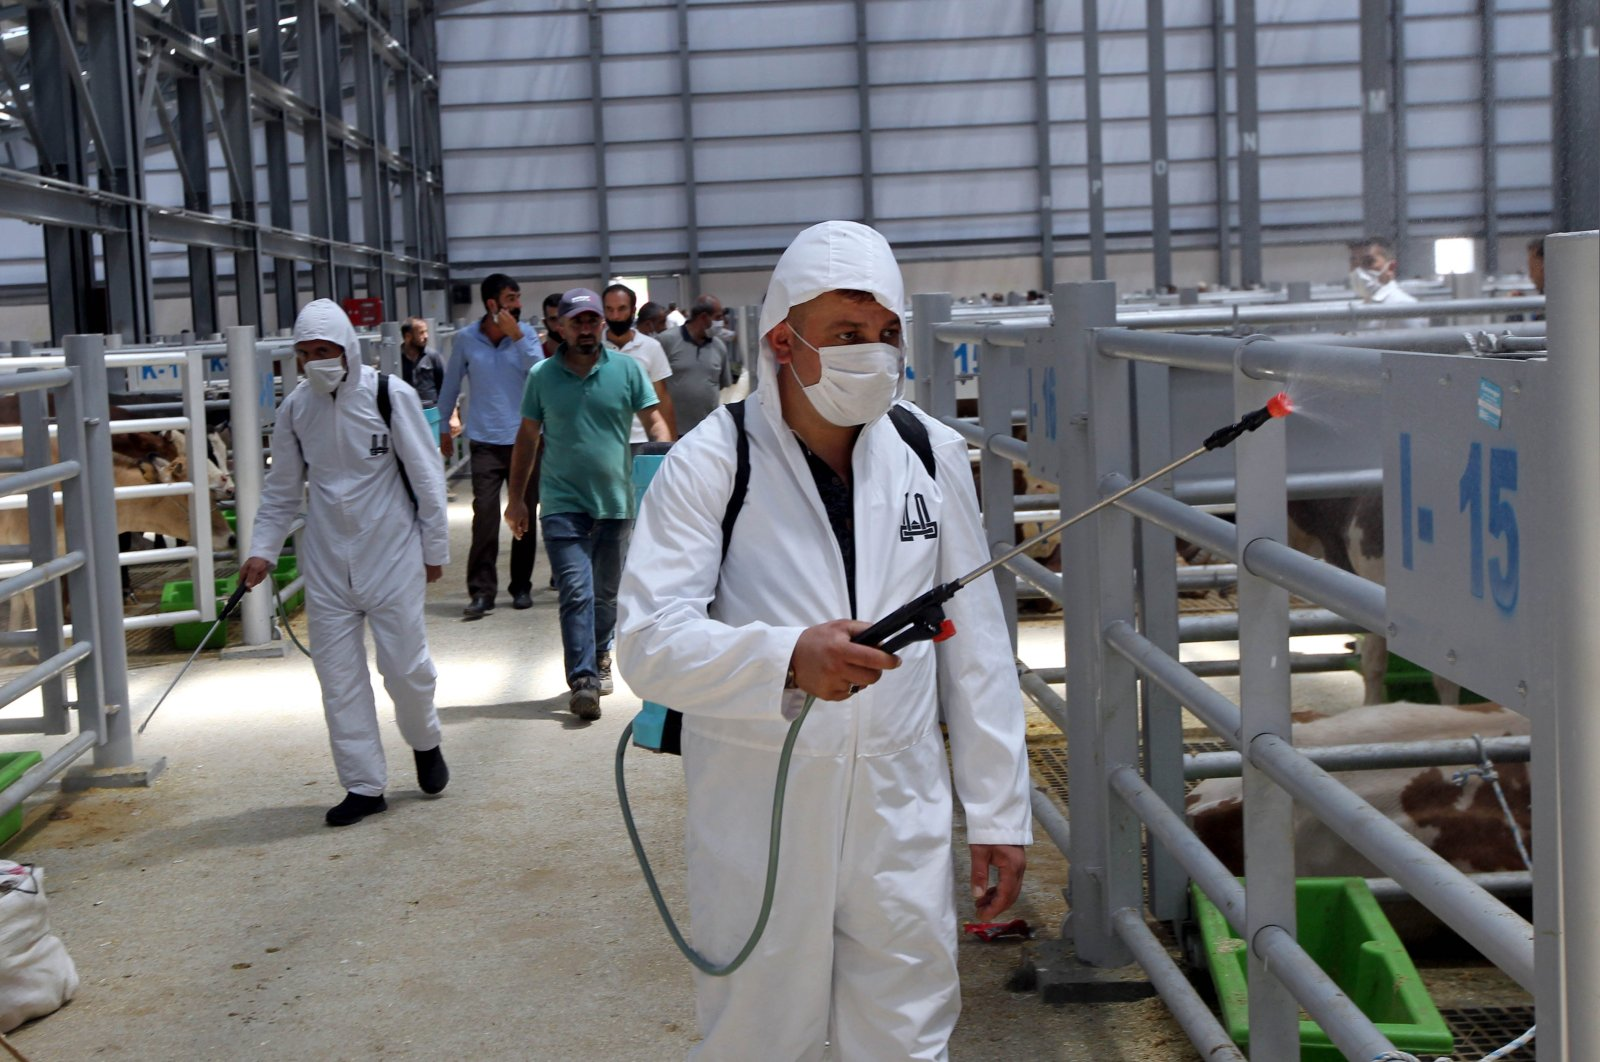 Municipality workers carry out disinfection work to prevent the spread of COVID-19 at a livestock market in Erzurum, Turkey, July 27, 2020. (AA Photo)